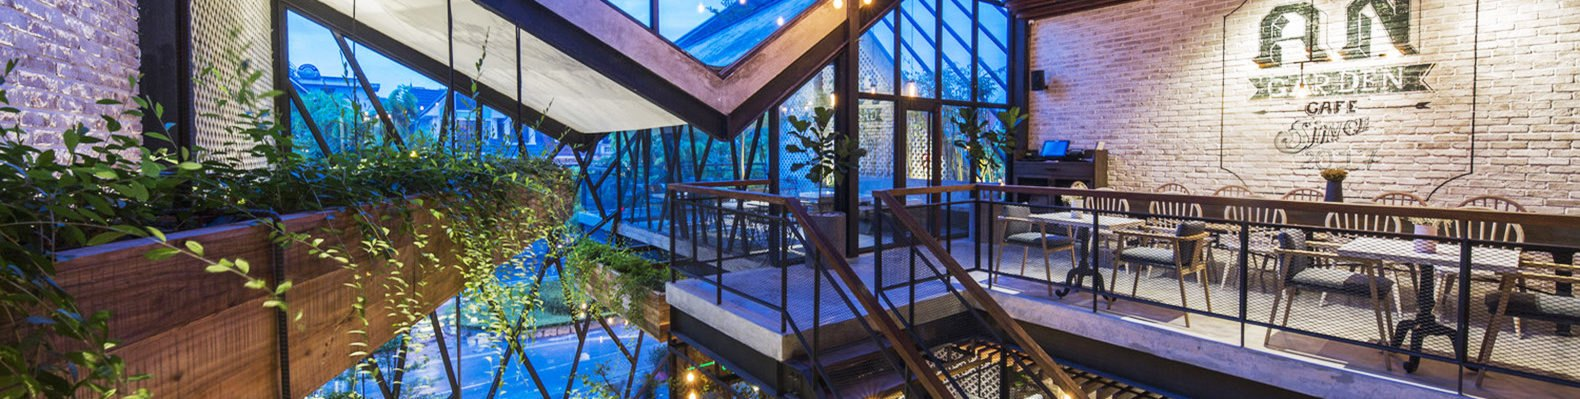 An'garden Café, coffee shop, handing plants, Ha Noi, Vietnam, cement, mezzanine, natural light, indoor pond, green interior, green architecture, industrial architecture